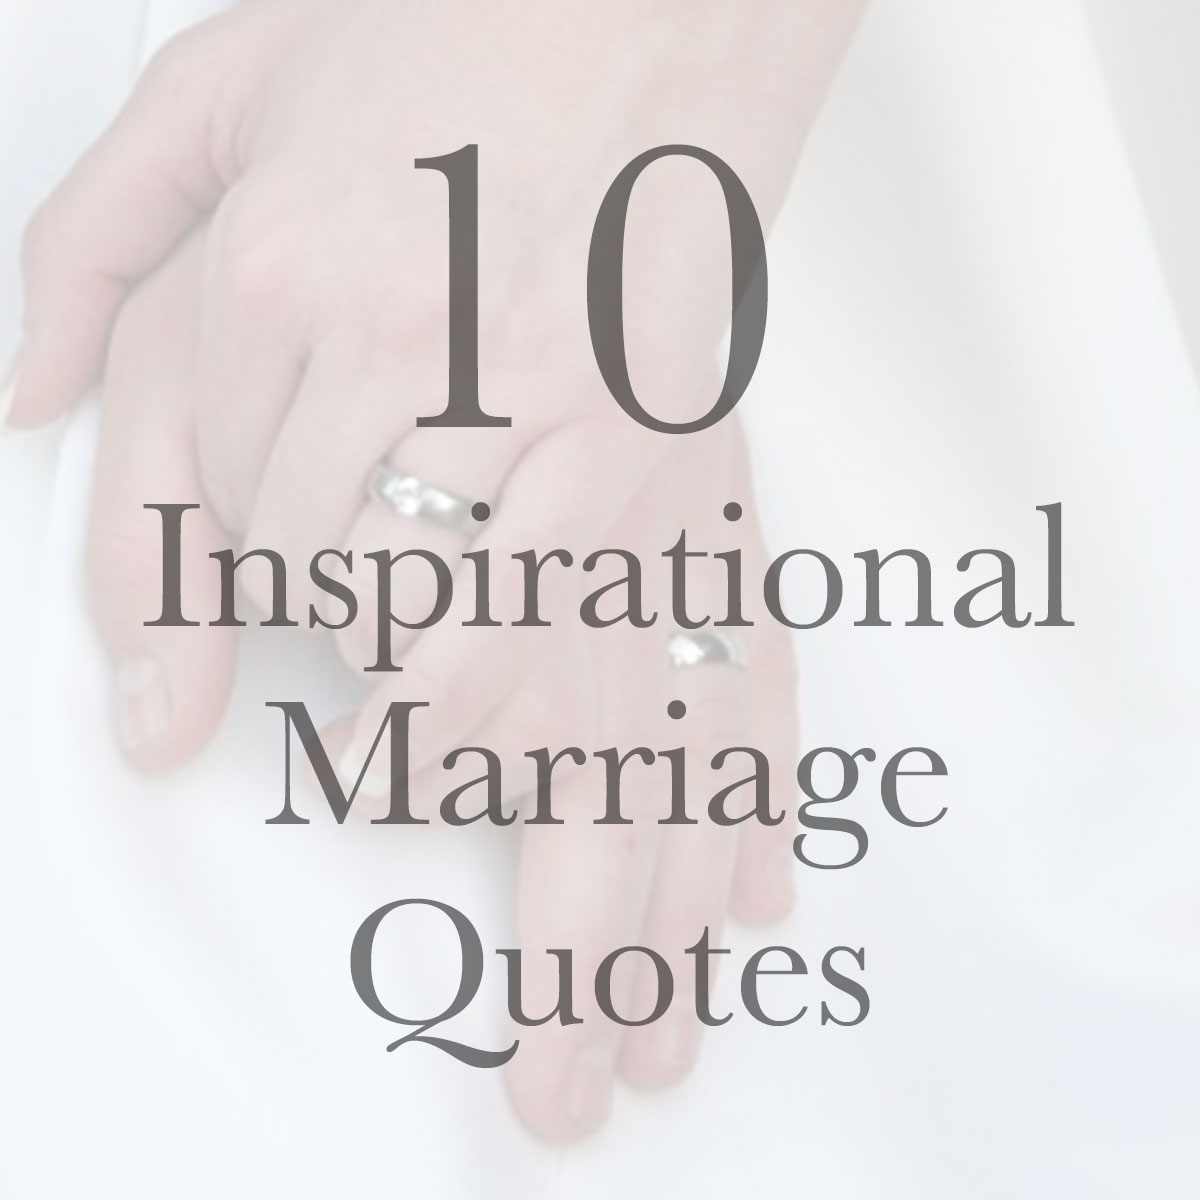 Quotes On Love And Marriage 10Marriagequotes